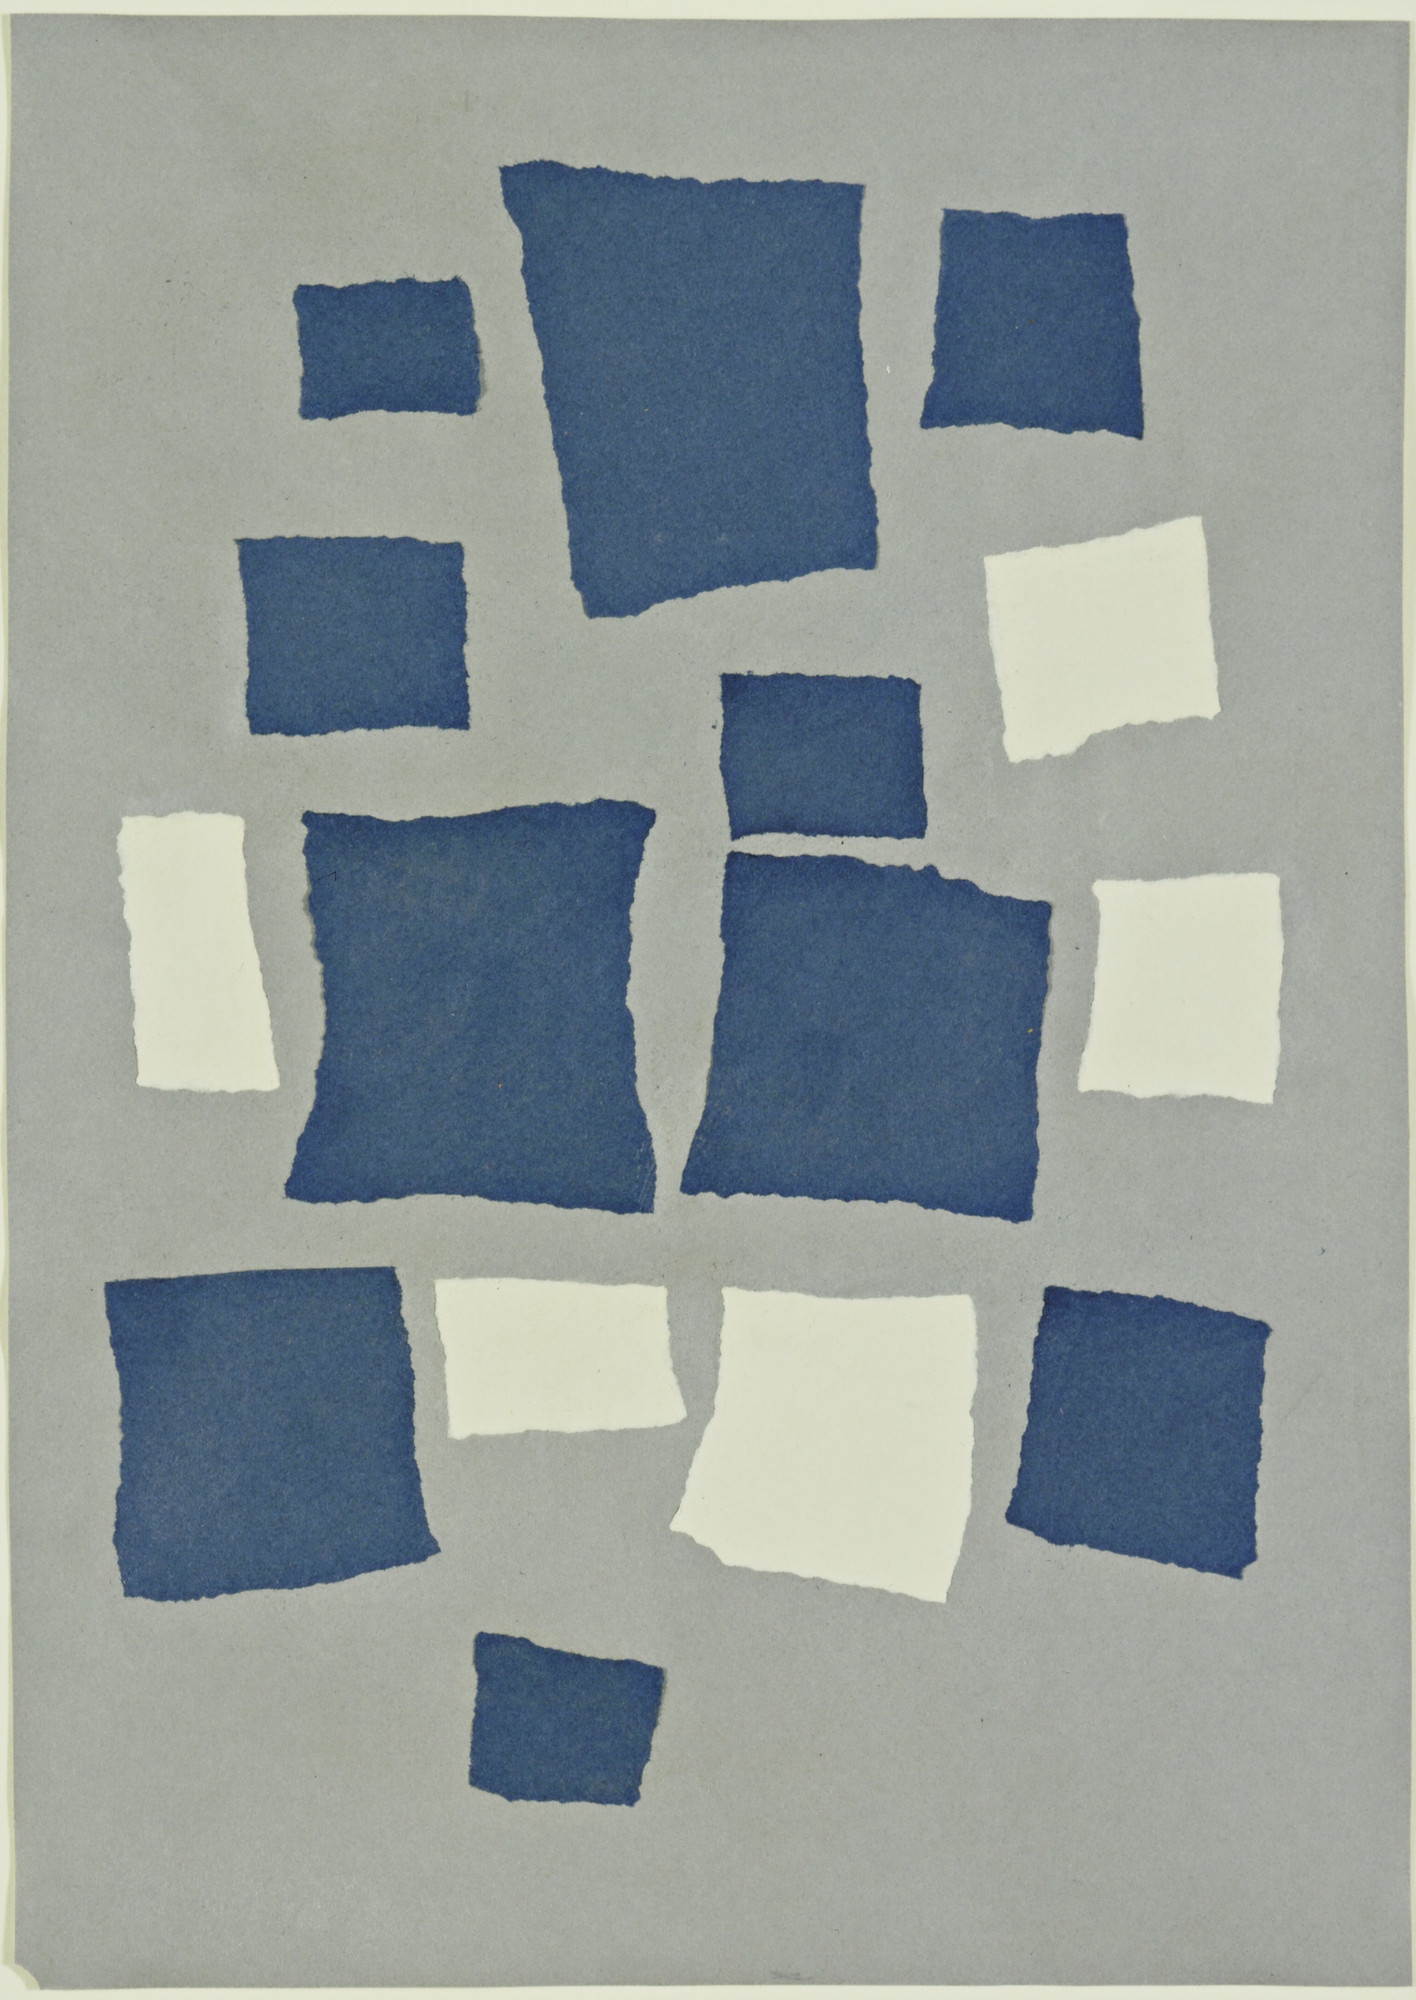 Jean Hans Arp Un Led Collage With Squares Arranged According To The Laws Of Chance